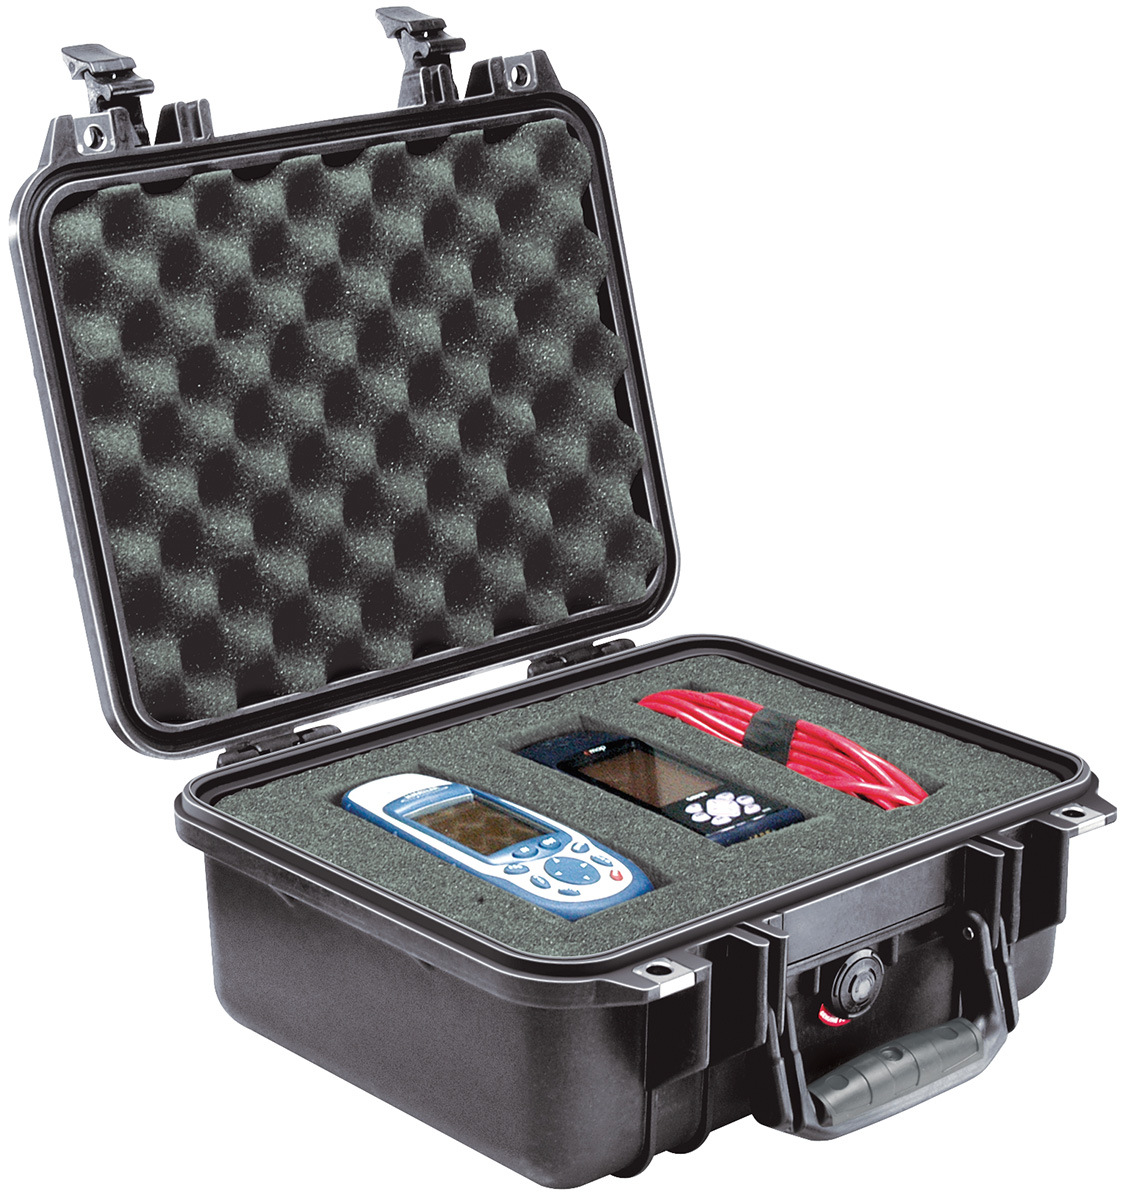 pelican crush water proof electronics case